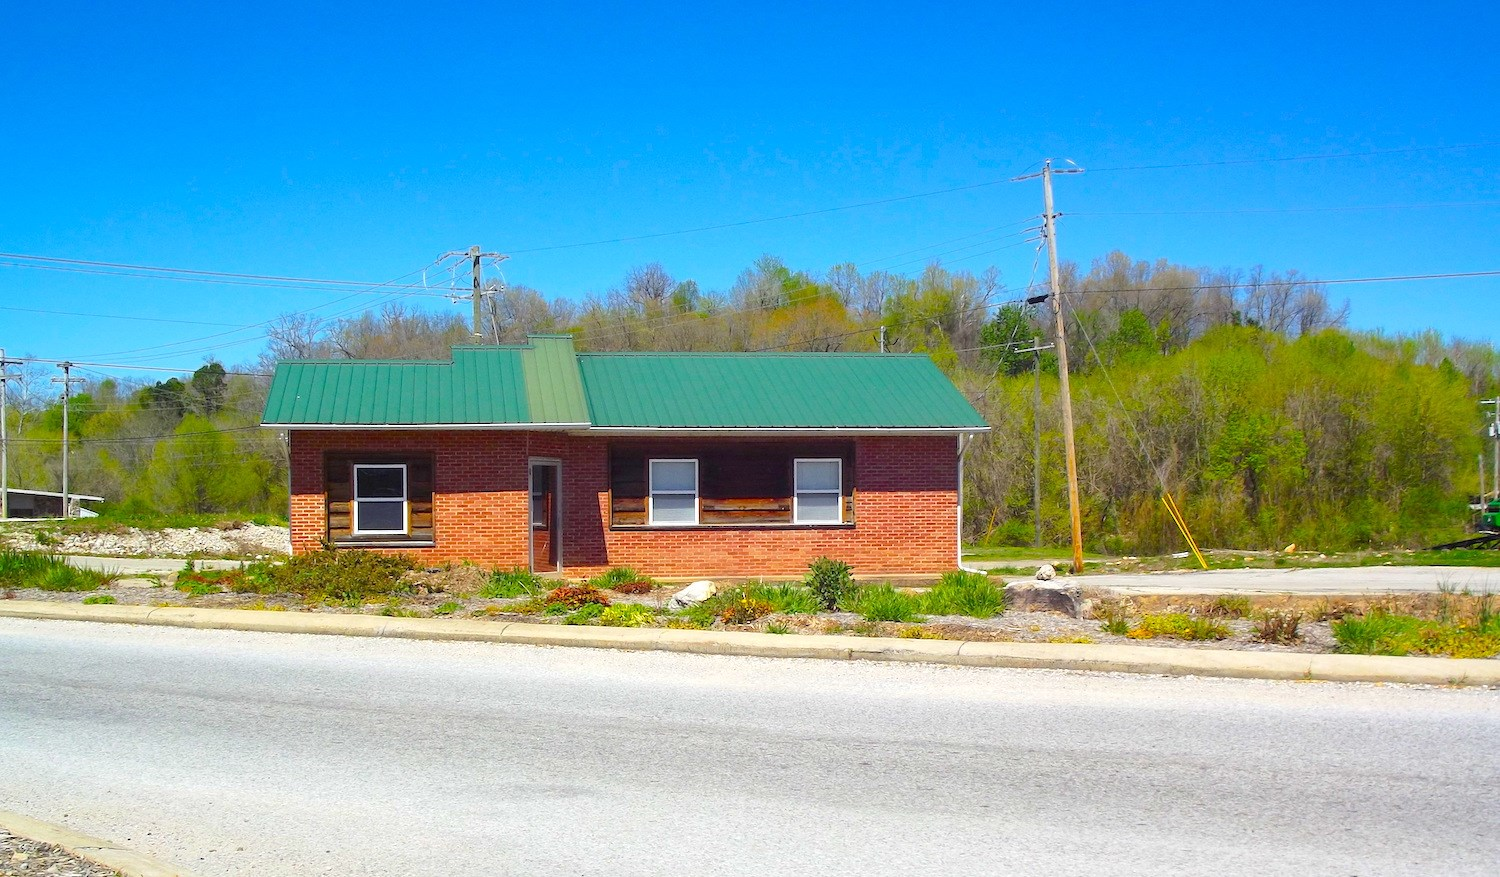 Commercial Business near Spring River For Sale in Arkansas